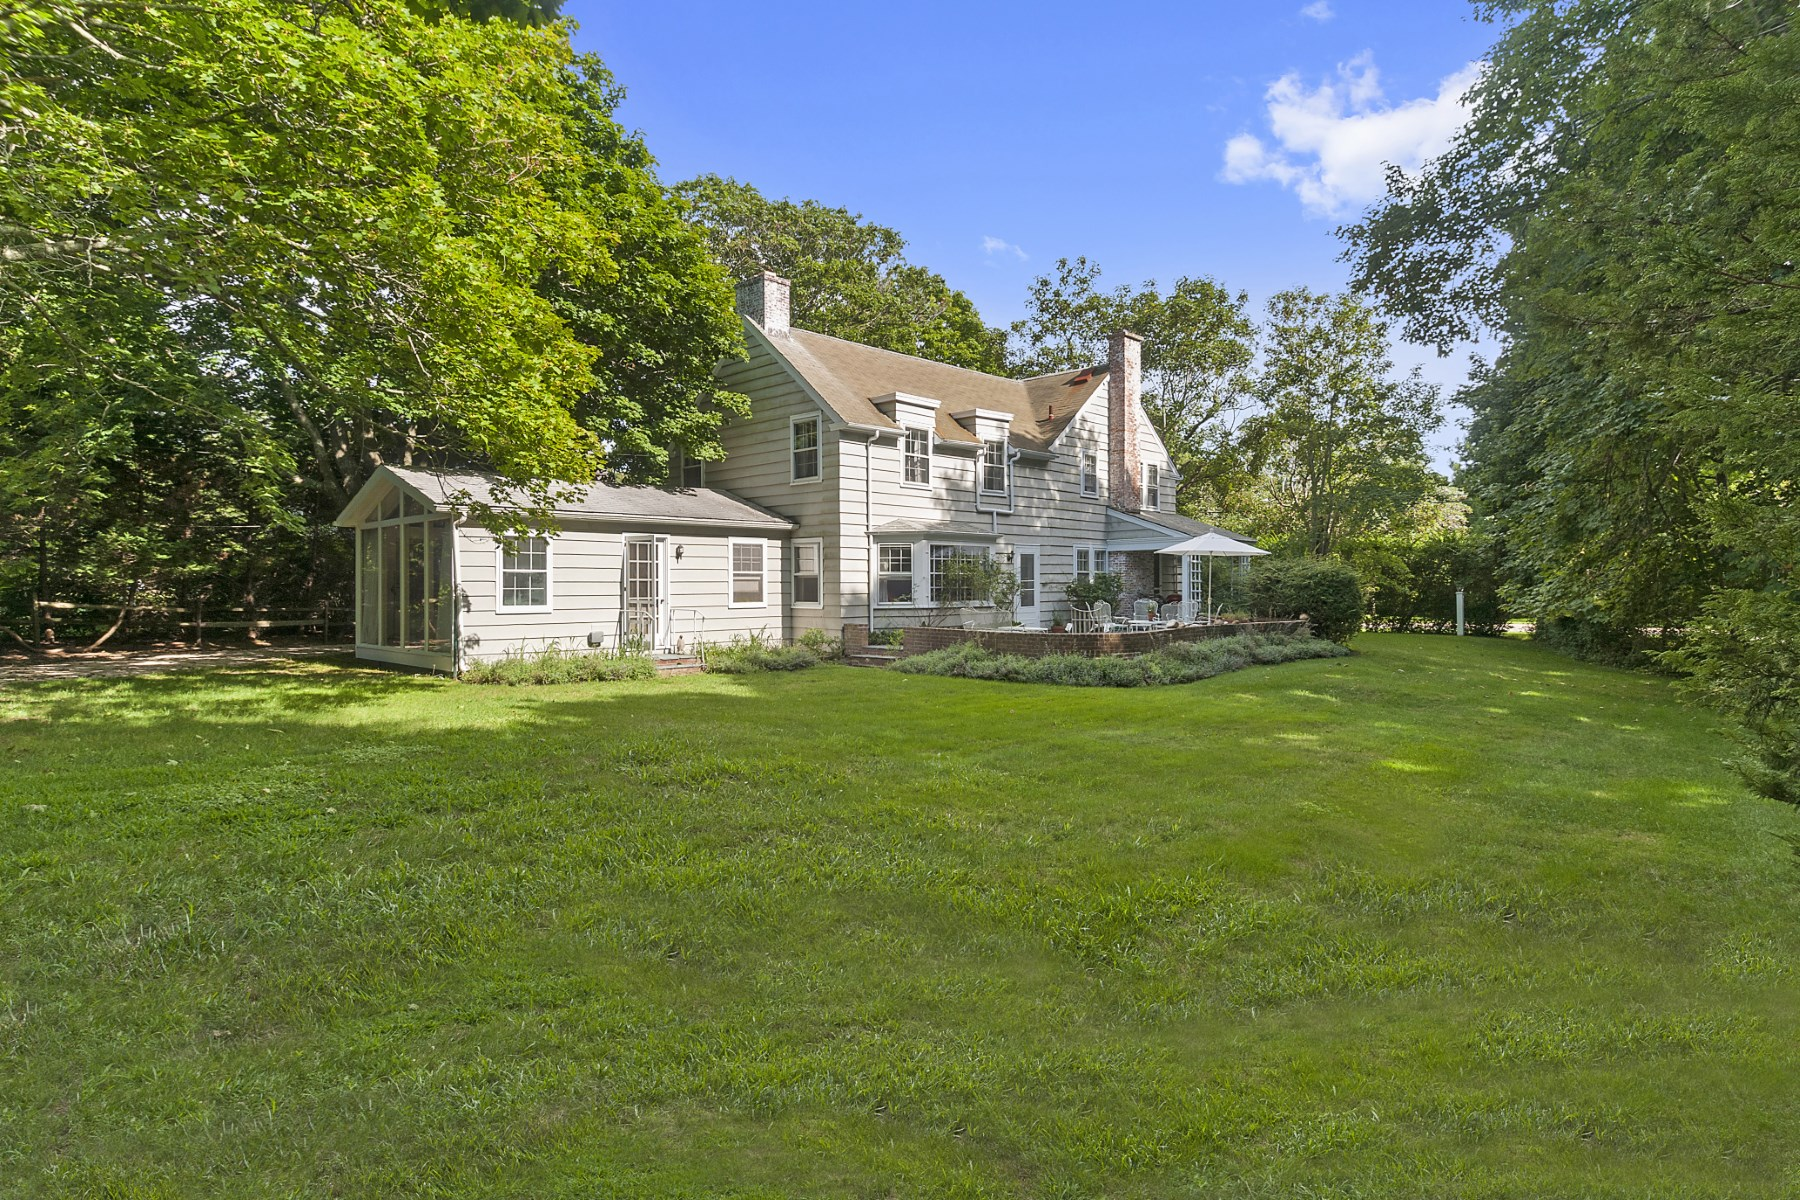 Maison unifamiliale pour l Vente à 1+- Acres, Bridgehampton South Bridgehampton, New York, 11932 États-Unis